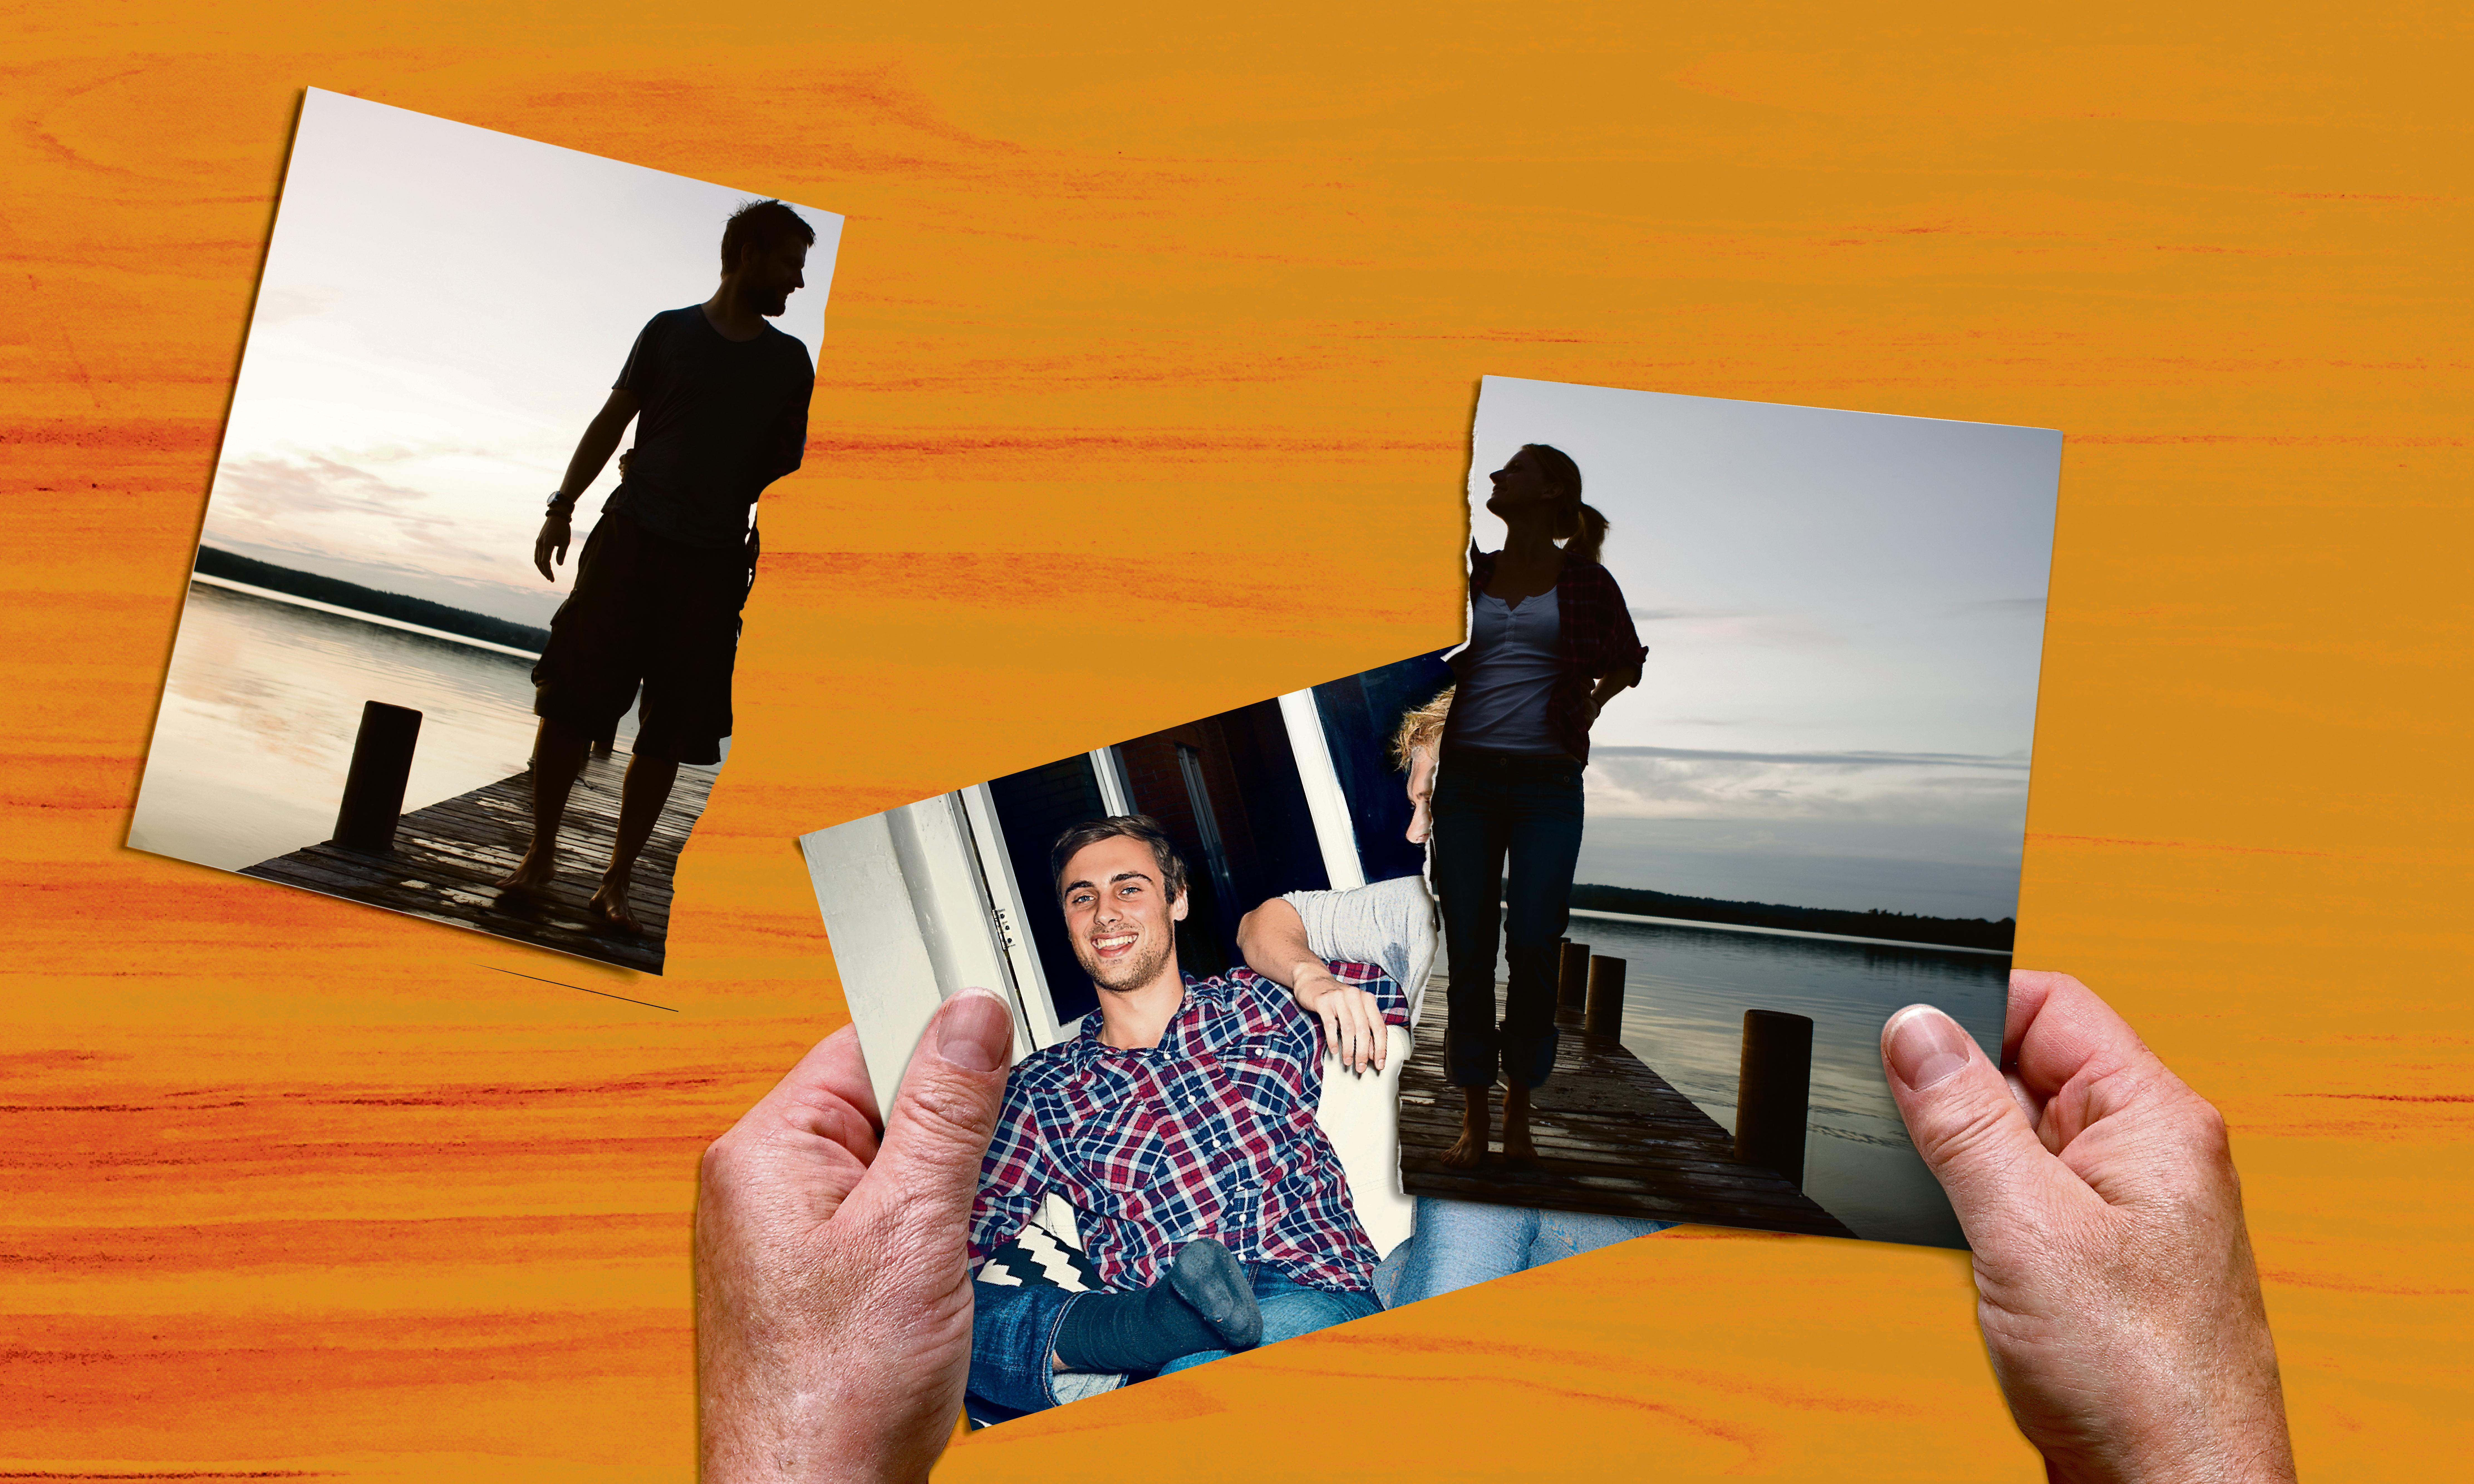 Match of the day: meet the people who helped their ex find new love